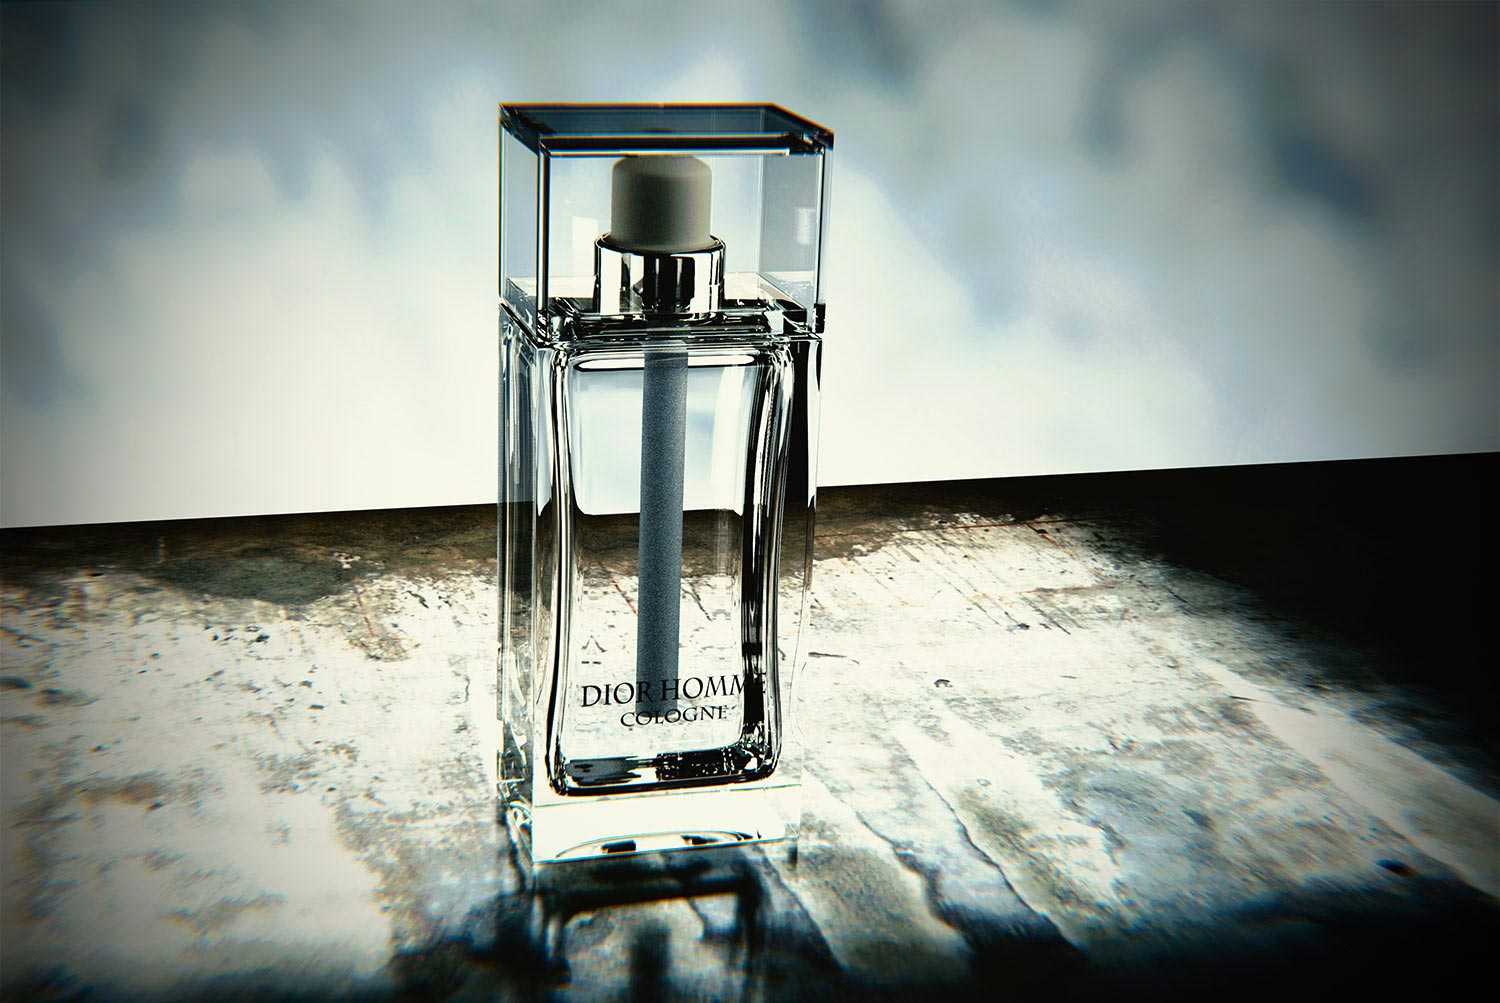 dior_composited_large_03